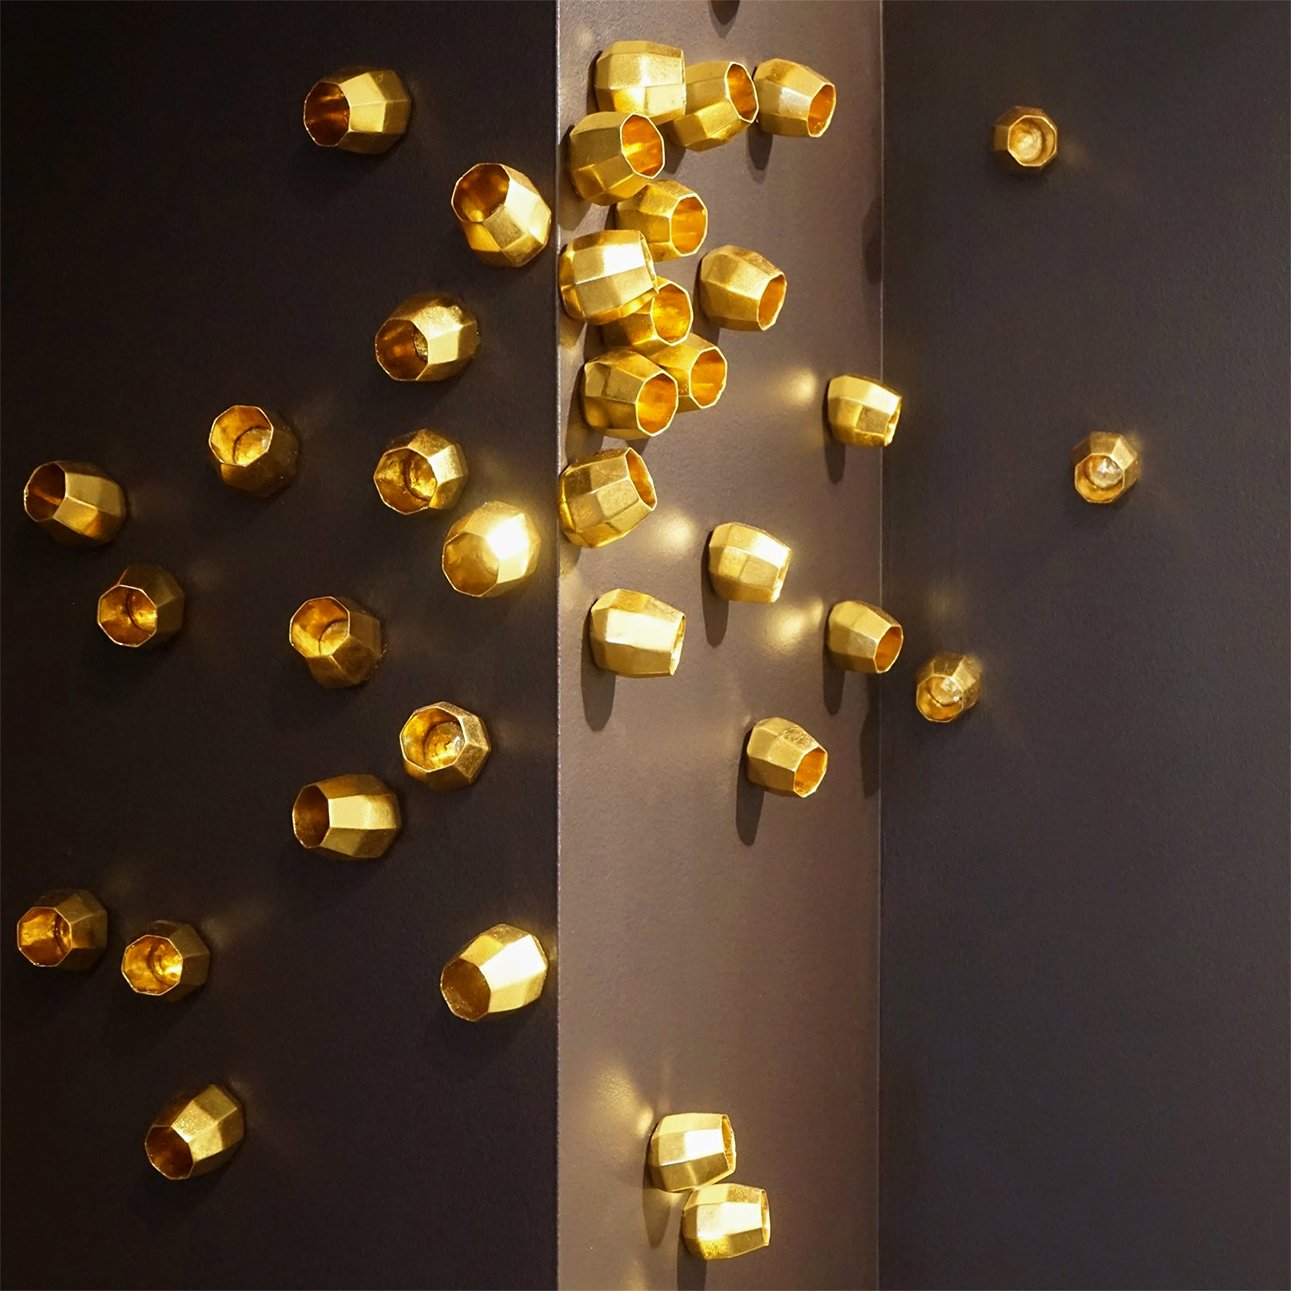 Wall Play™: Barnacle, Gold Leaf